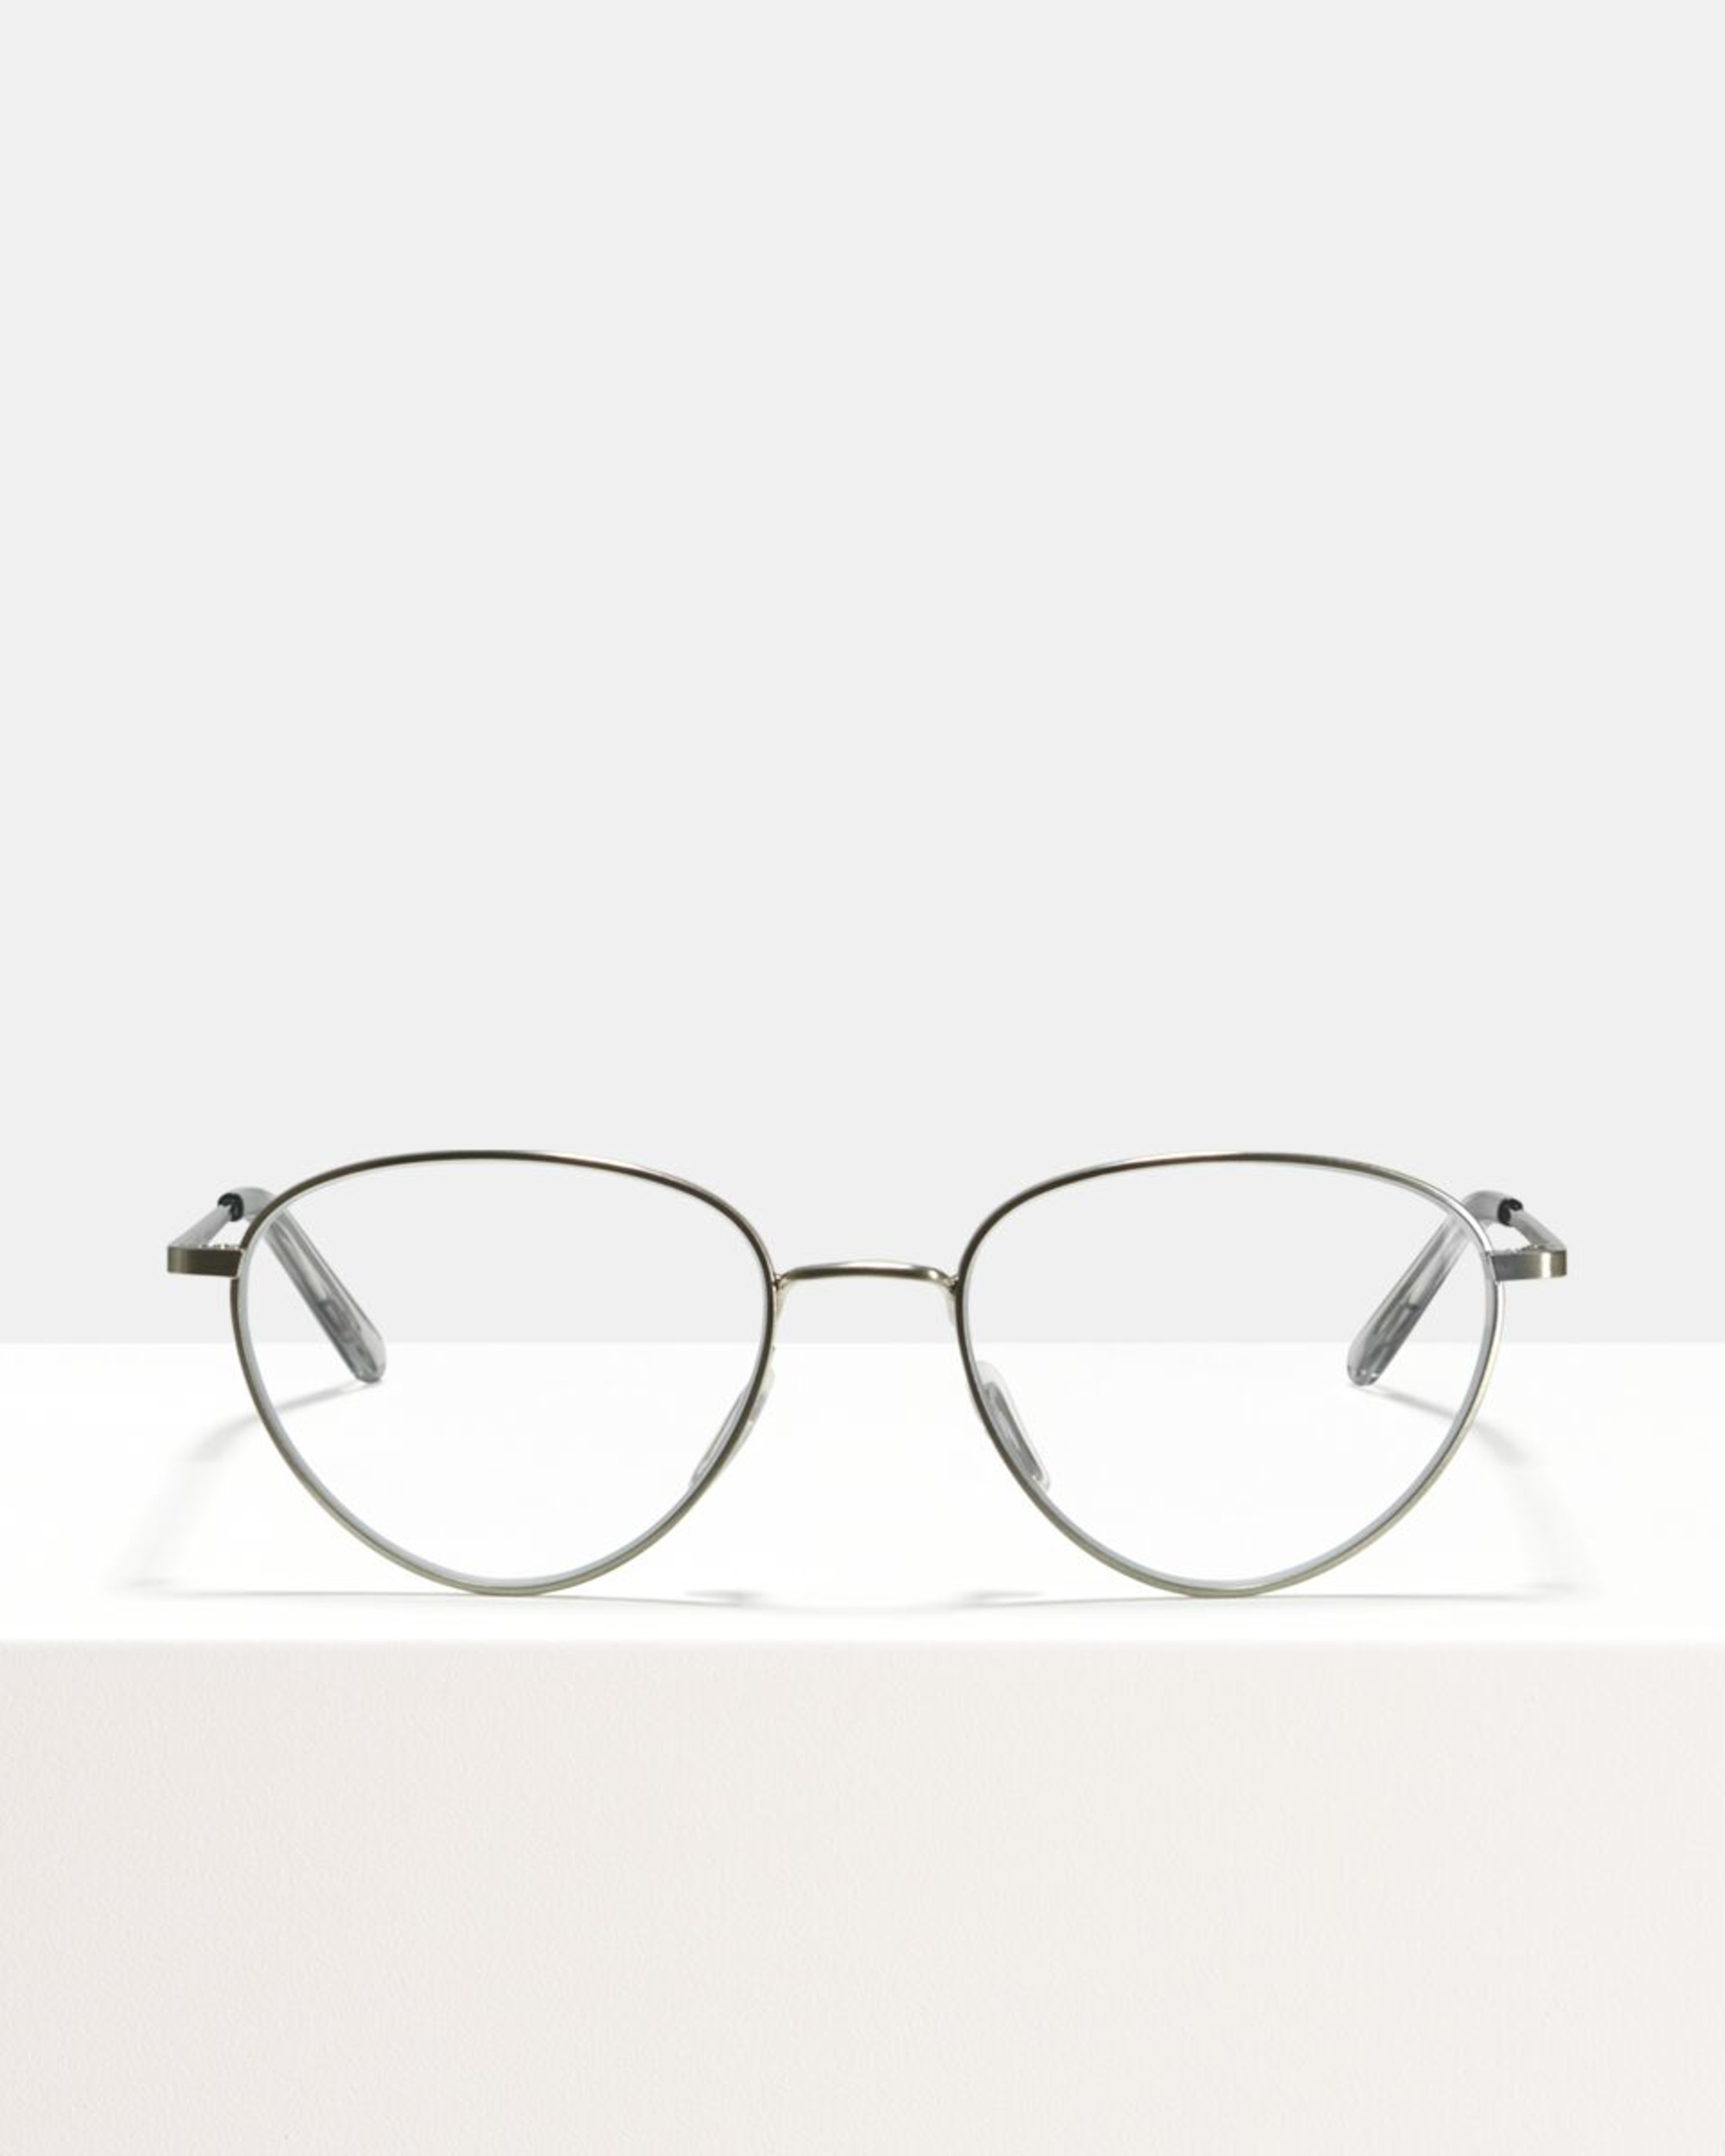 Ace & Tate Glasses |  metal in Silver